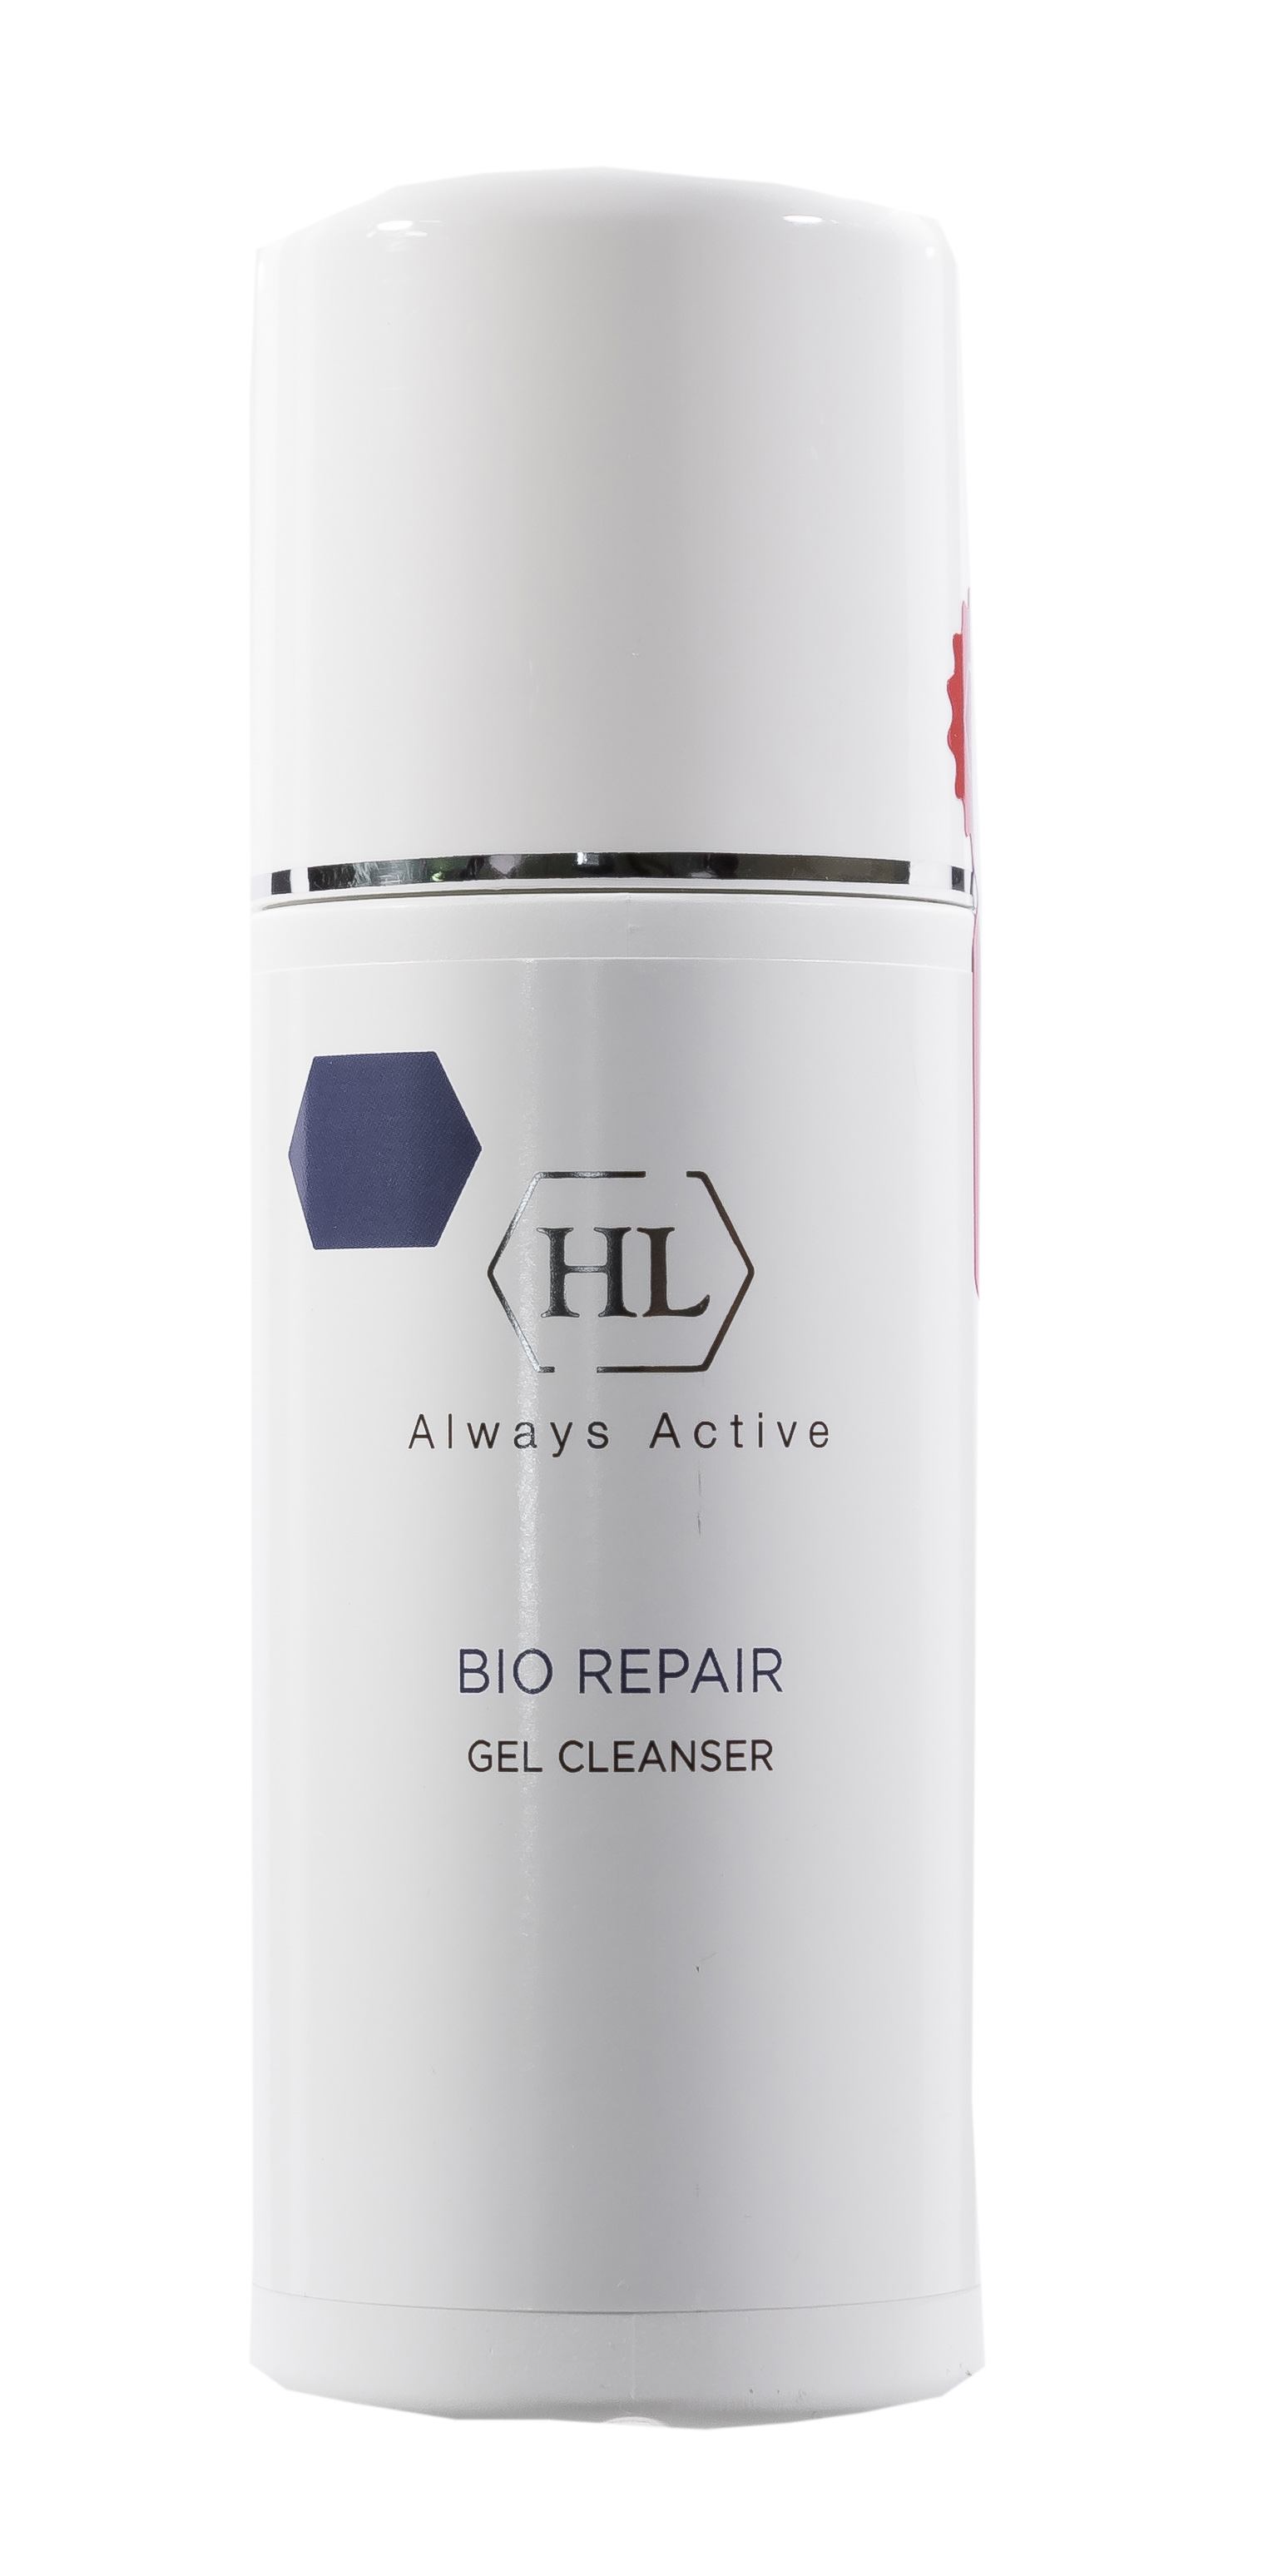 Холи Ленд Очищающий гель BIO REPAIR GEL CLEANSER, 250 мл (Holyland Laboratories, Bio Repair) фото 1